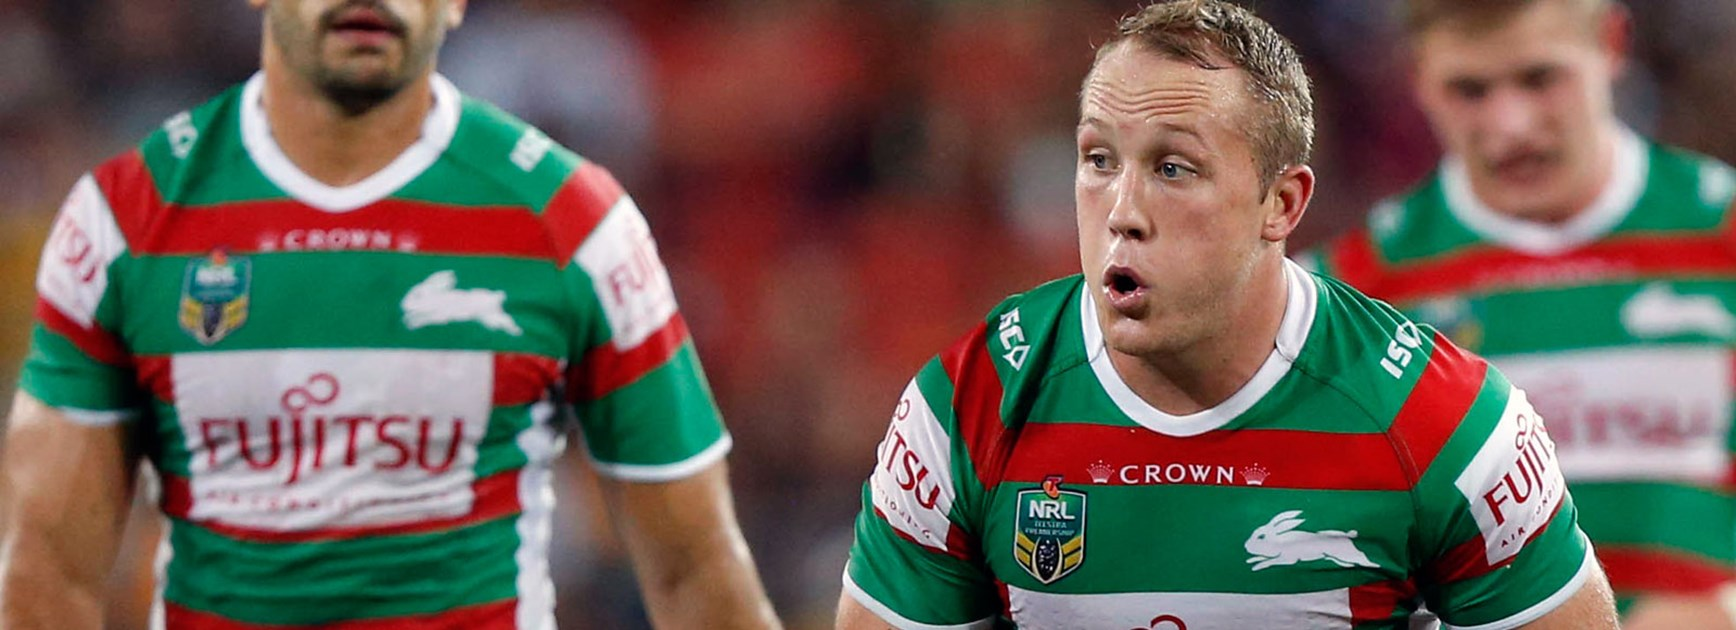 Rabbitohs utility Jason Clark has fond memories of junior playing days at Redfern Oval.